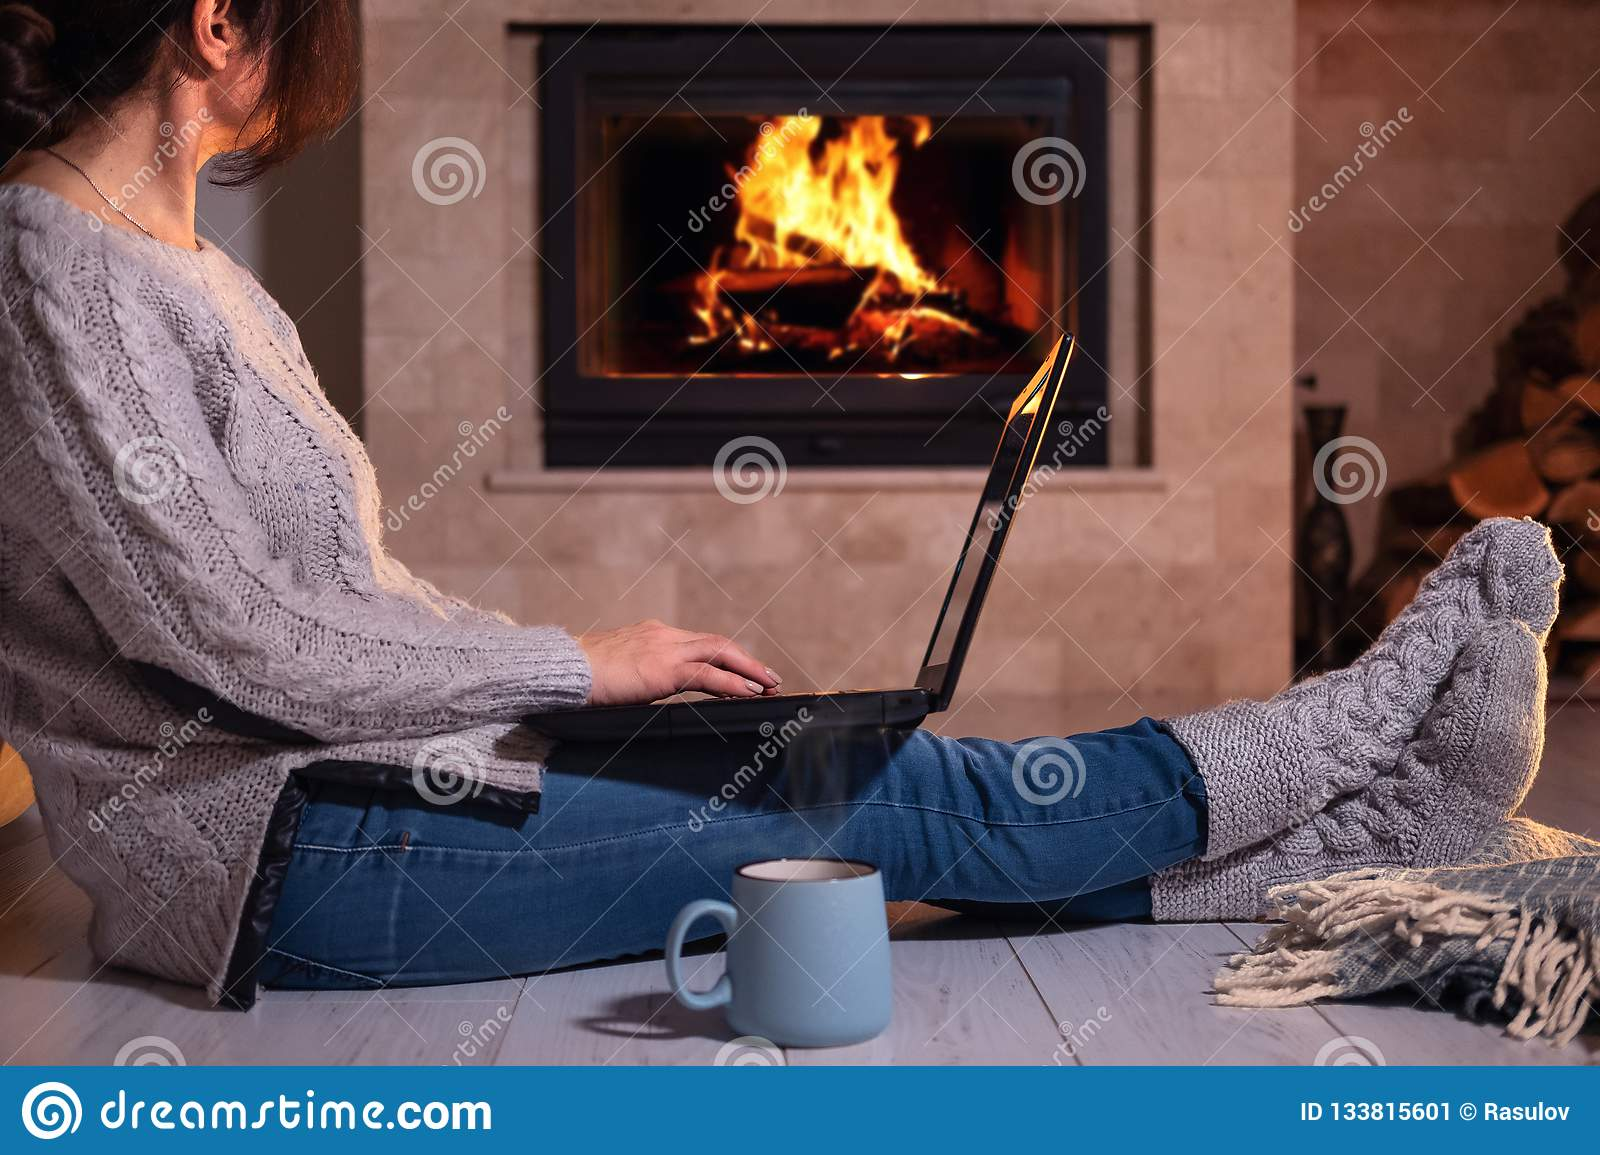 Woman sits at the floor with a laptop on the fireplace background.